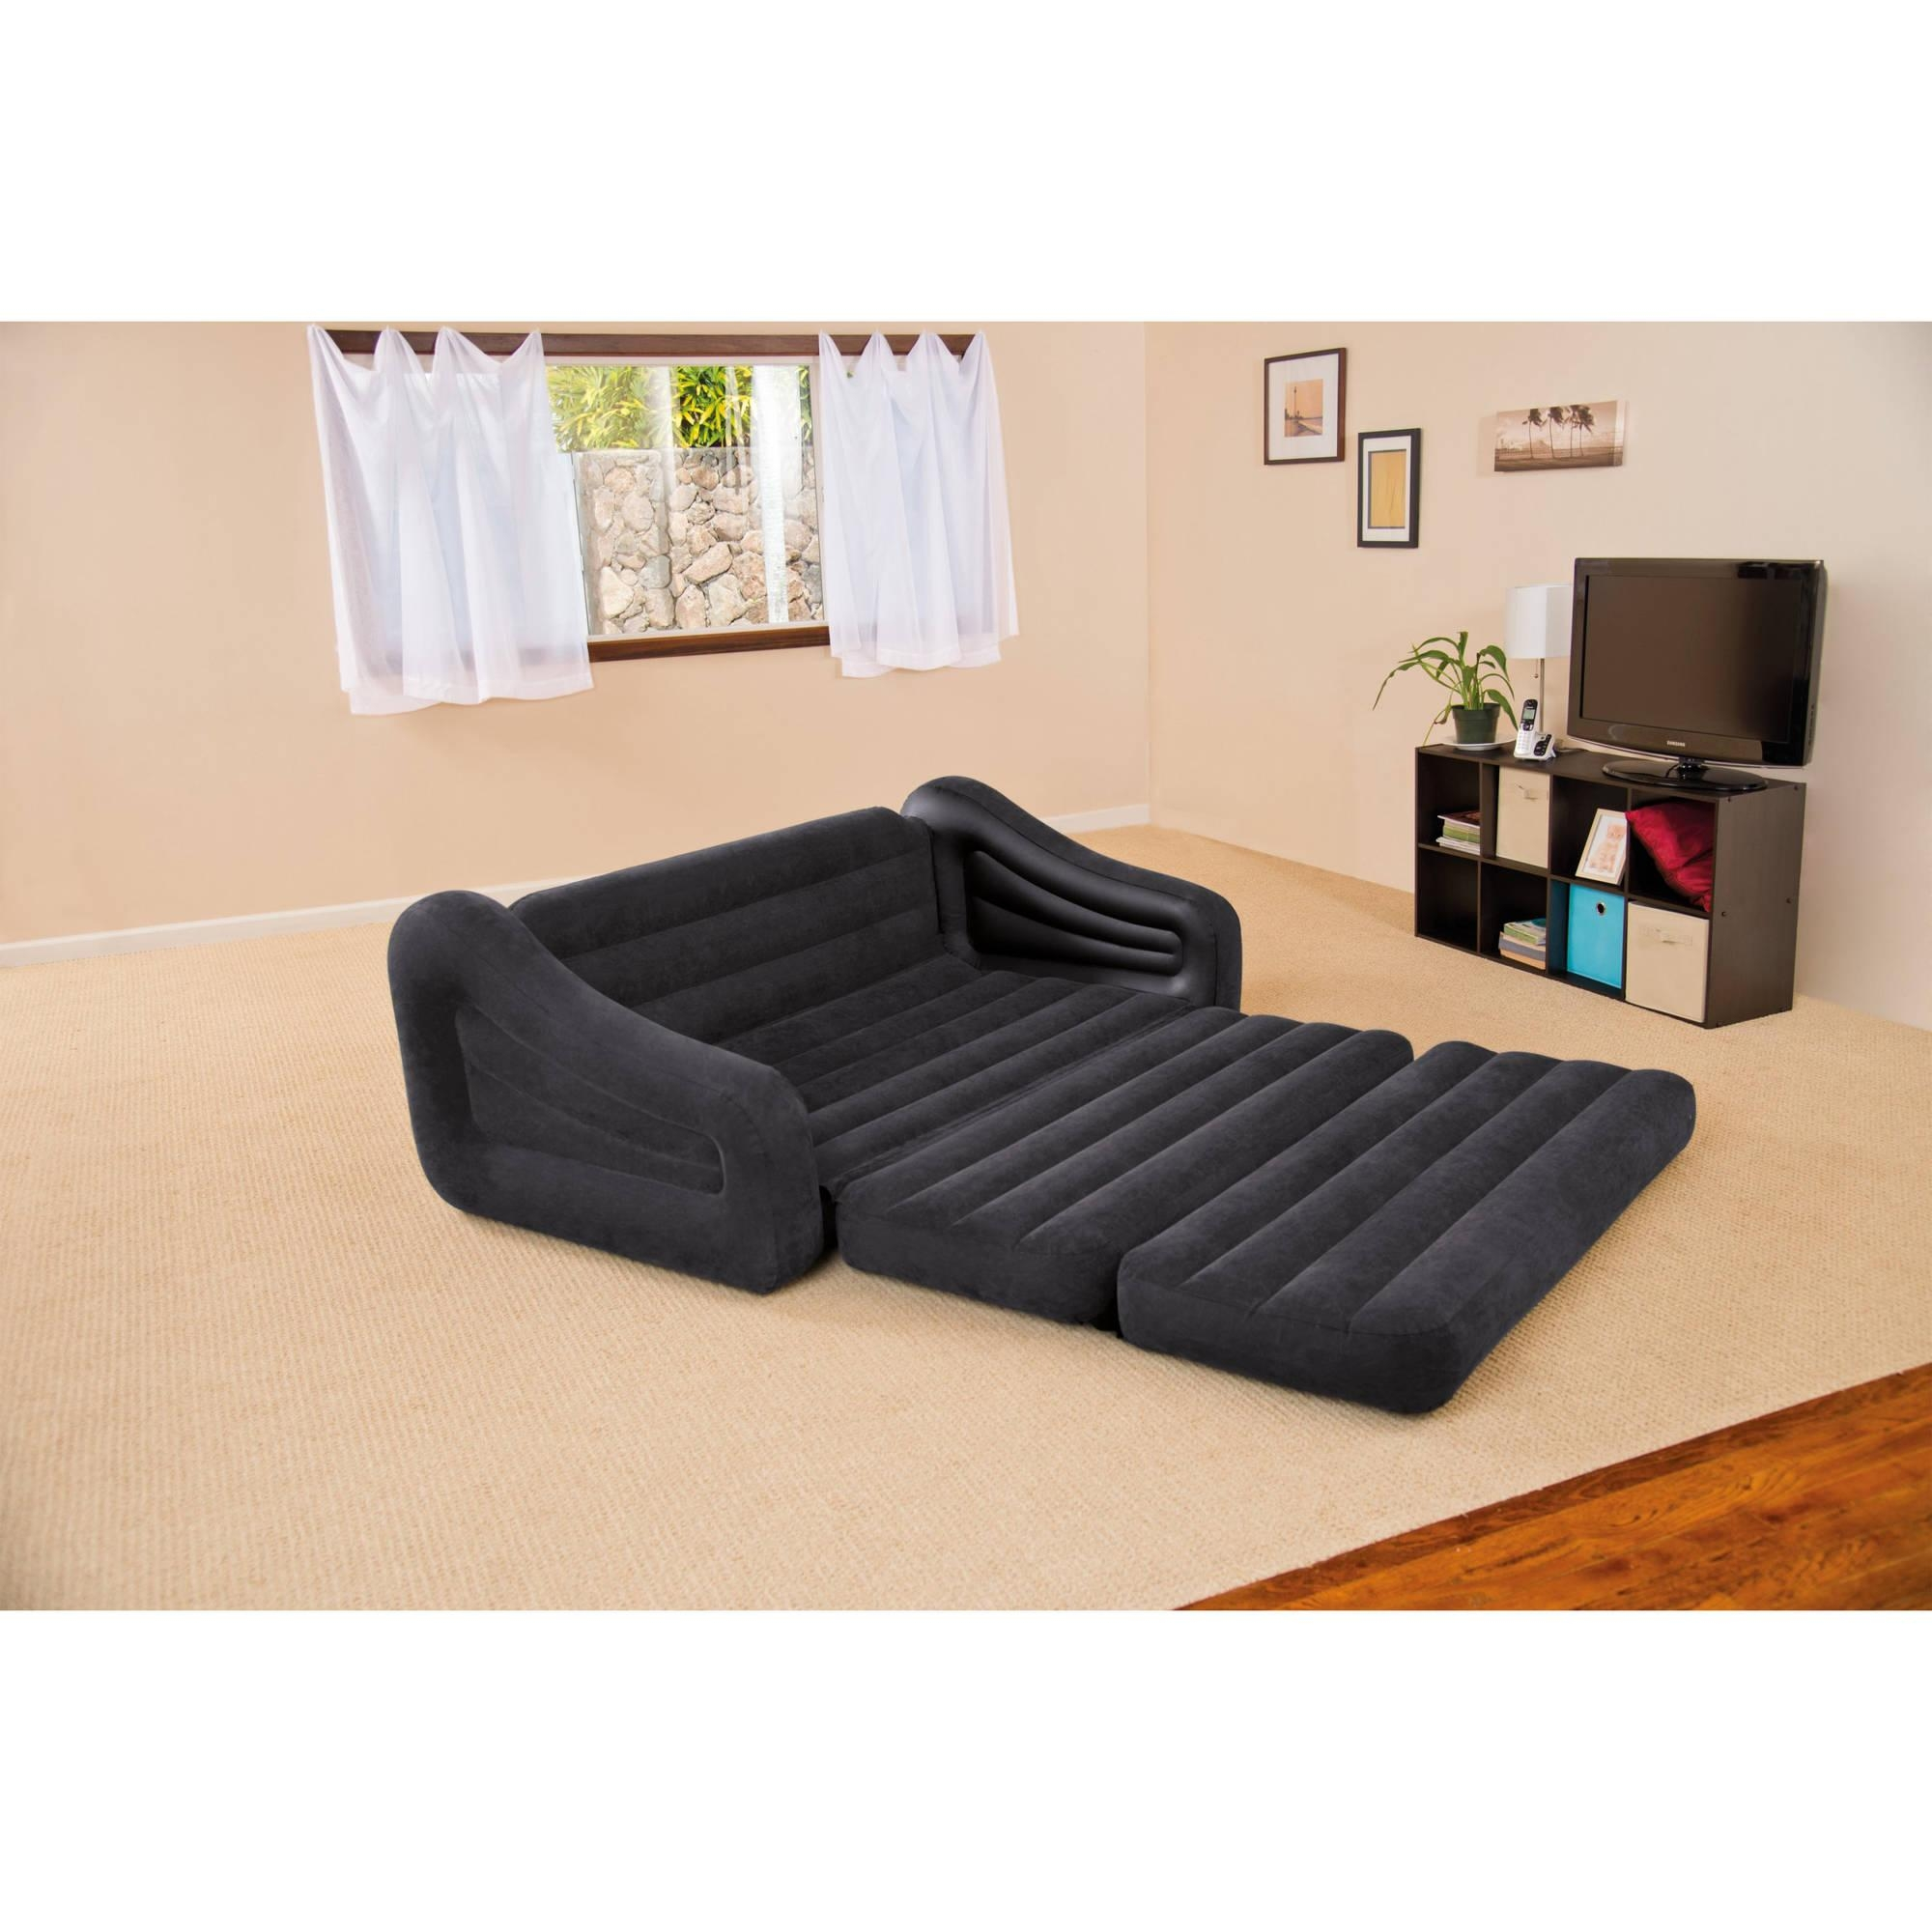 Intex Queen Inflatable Pull Out Sofa Bed – Walmart For Intex Inflatable Sofas (Image 16 of 20)